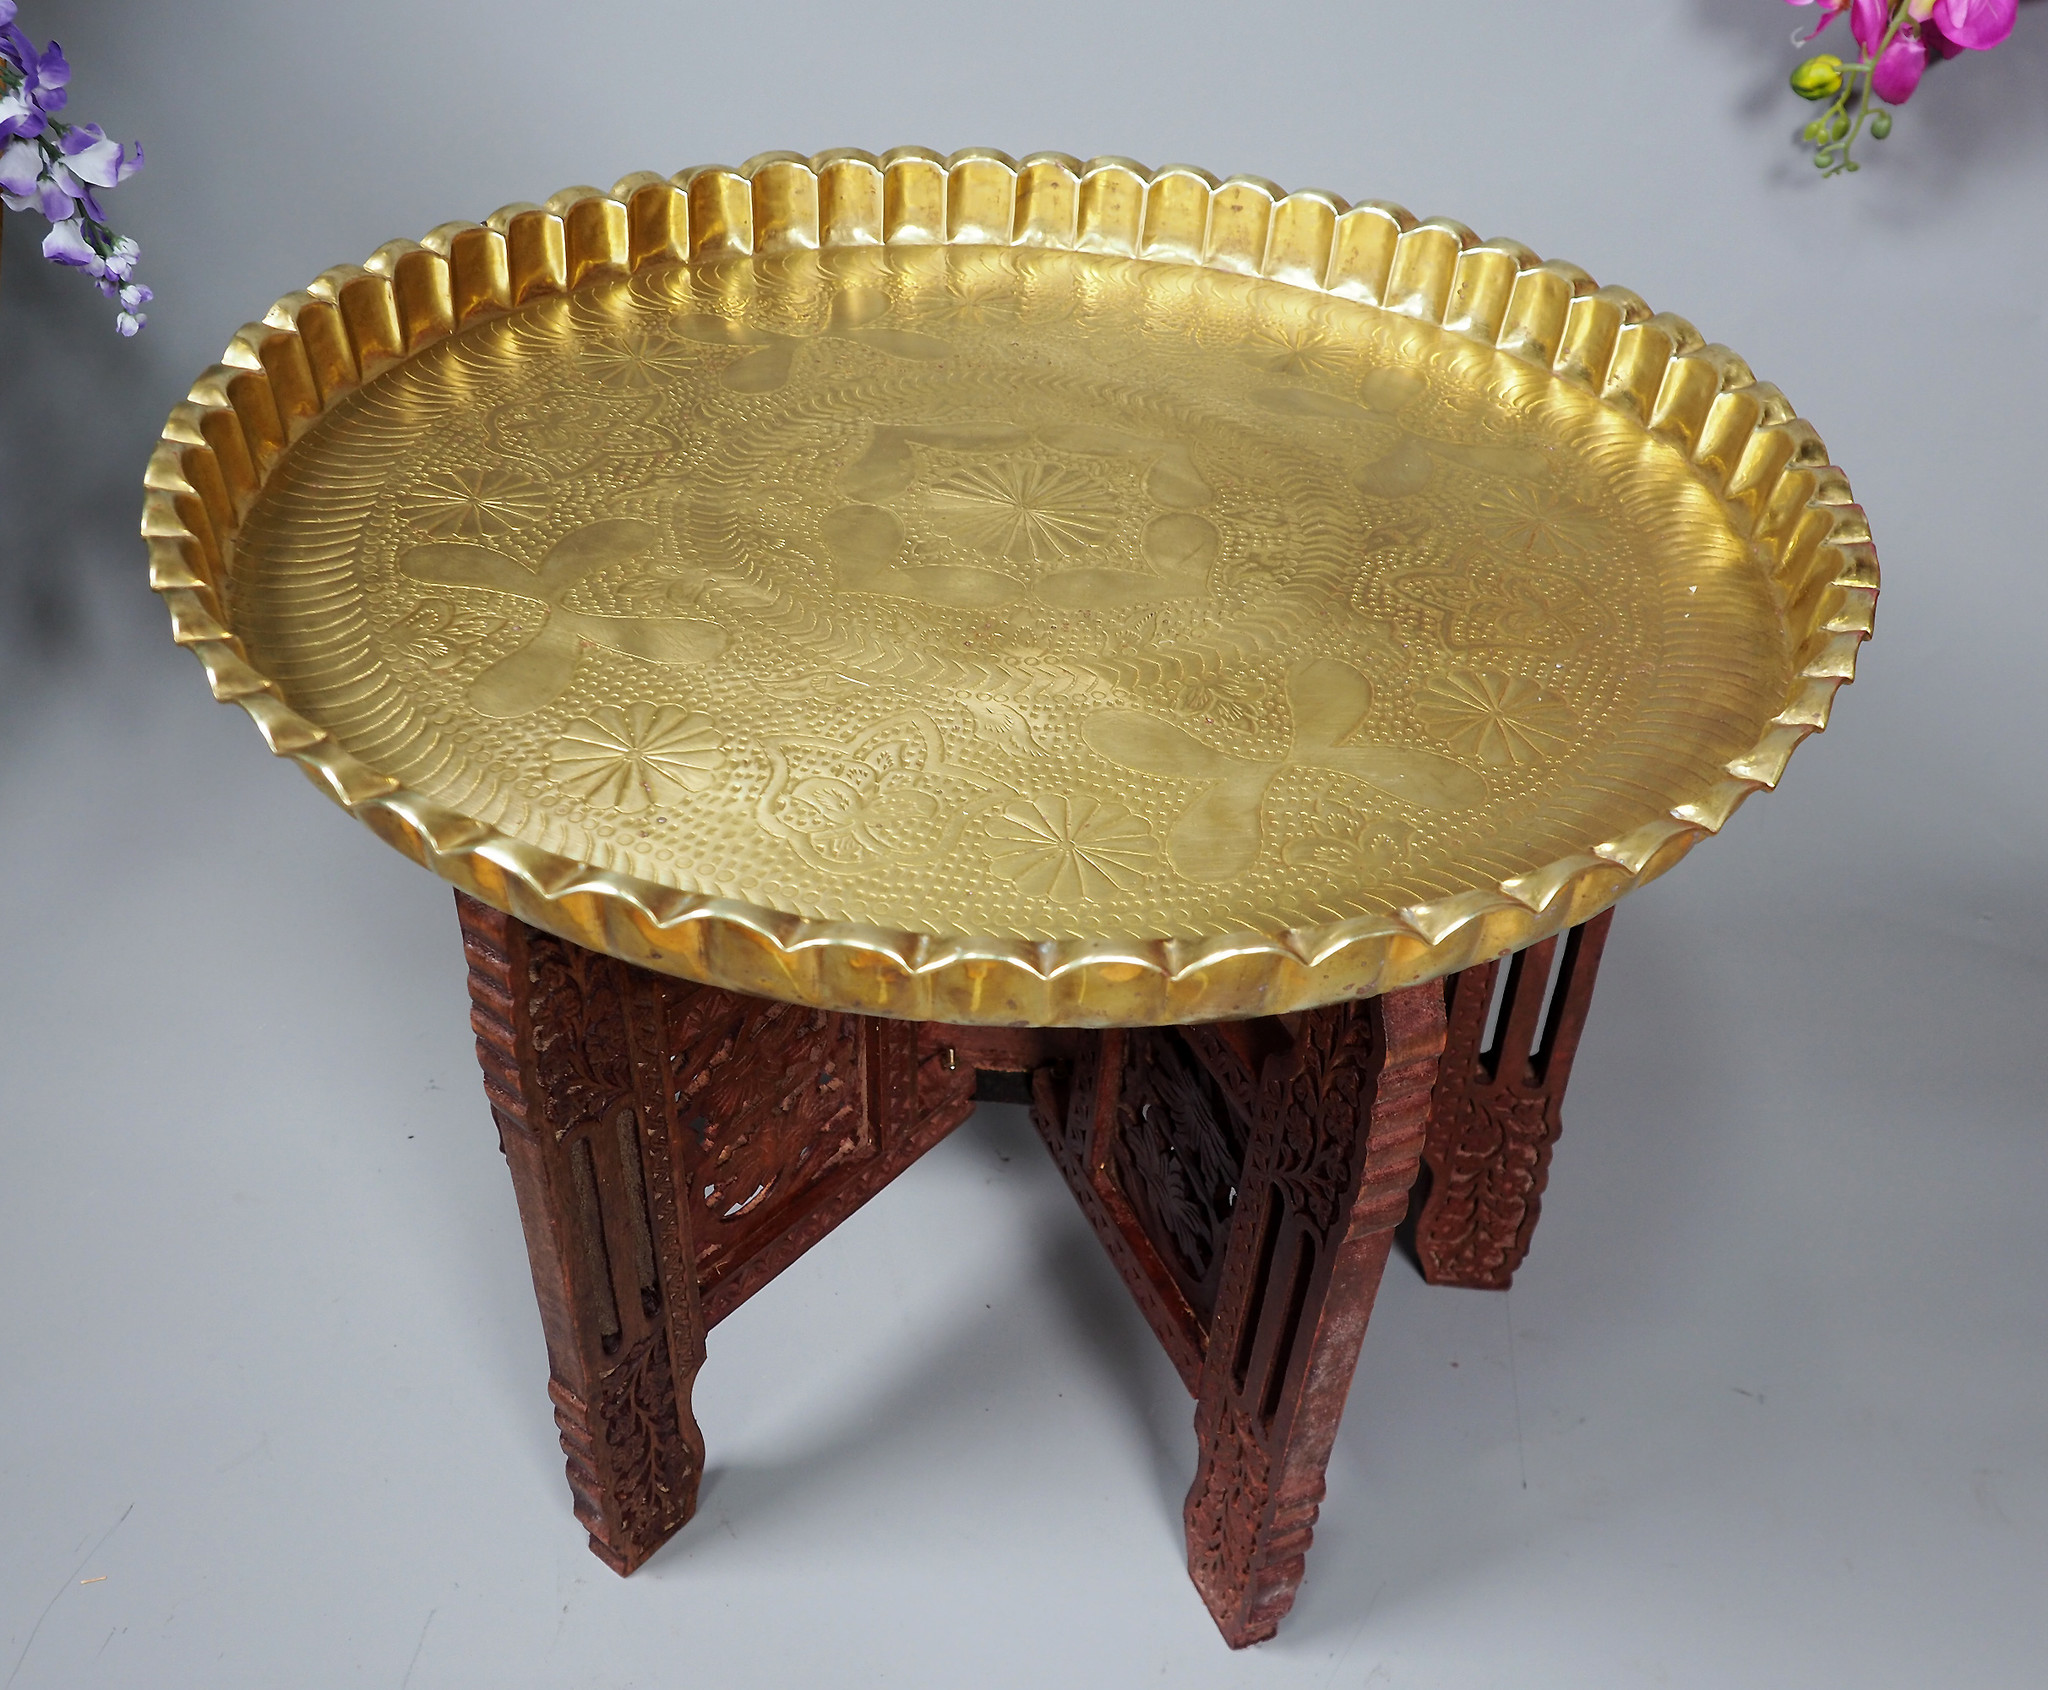 55 cm Antique ottoman orient Islamic  Hammer Engraved Brass table Tea table side table Tray from Afghanistan  No-21/G